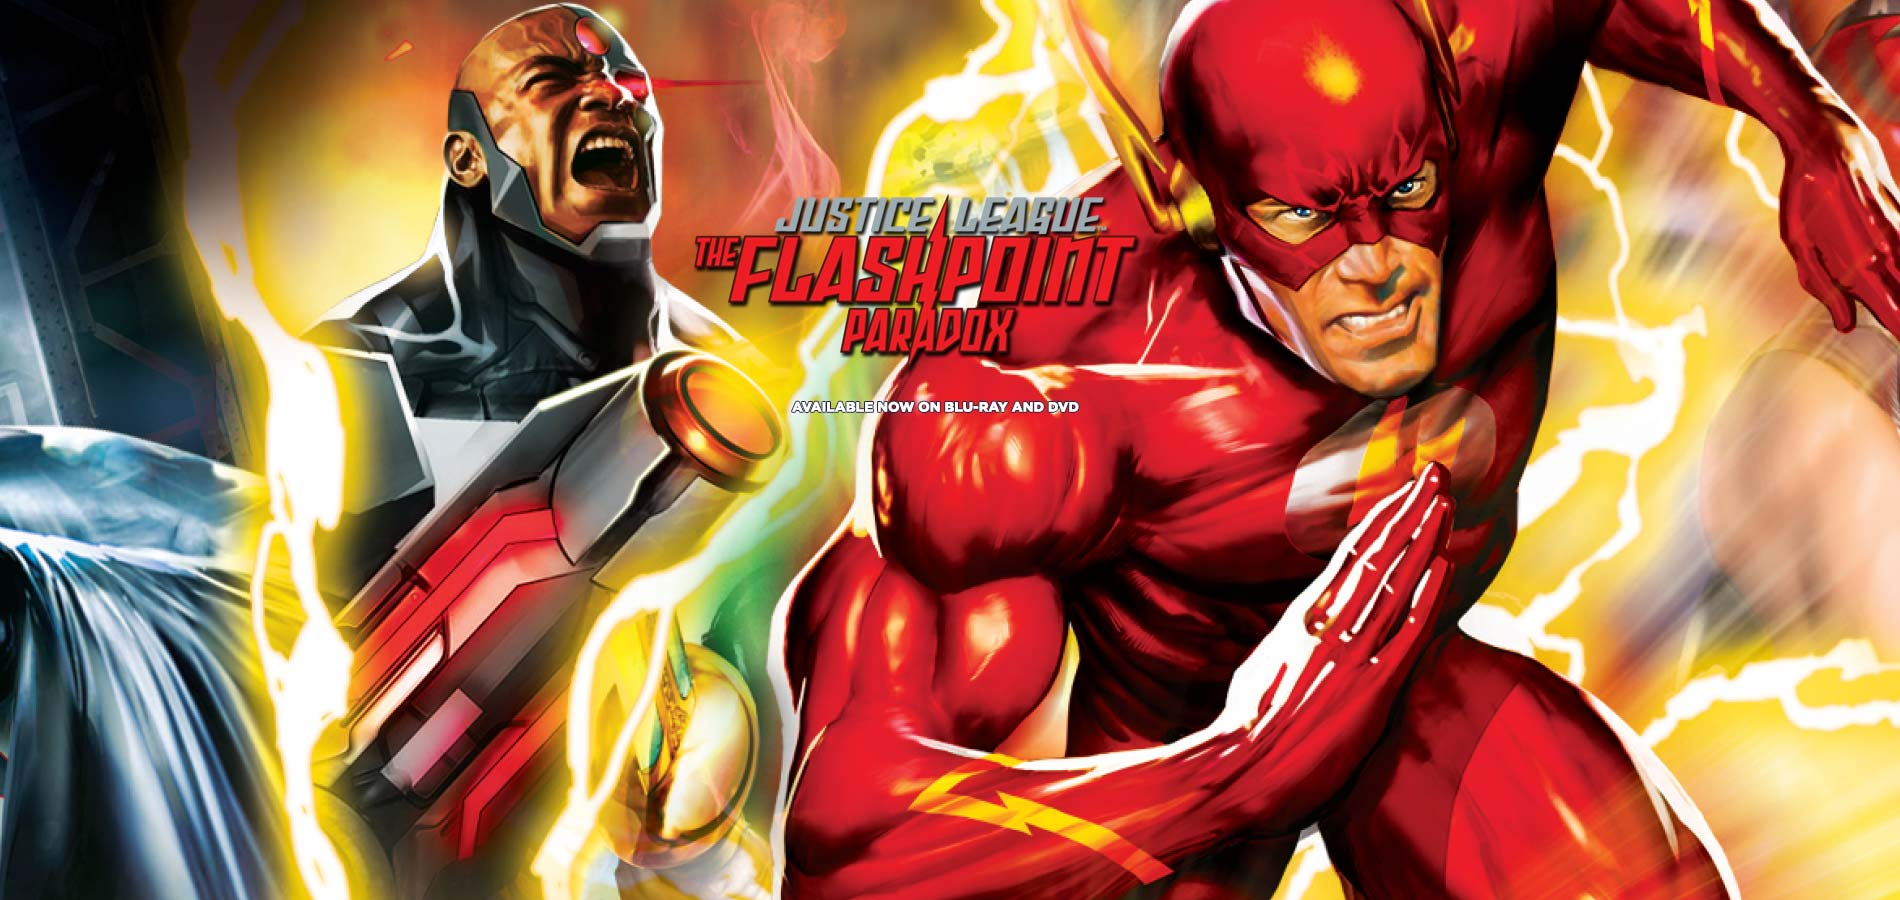 Justice League The Flashpoint Paradox 2013  DC